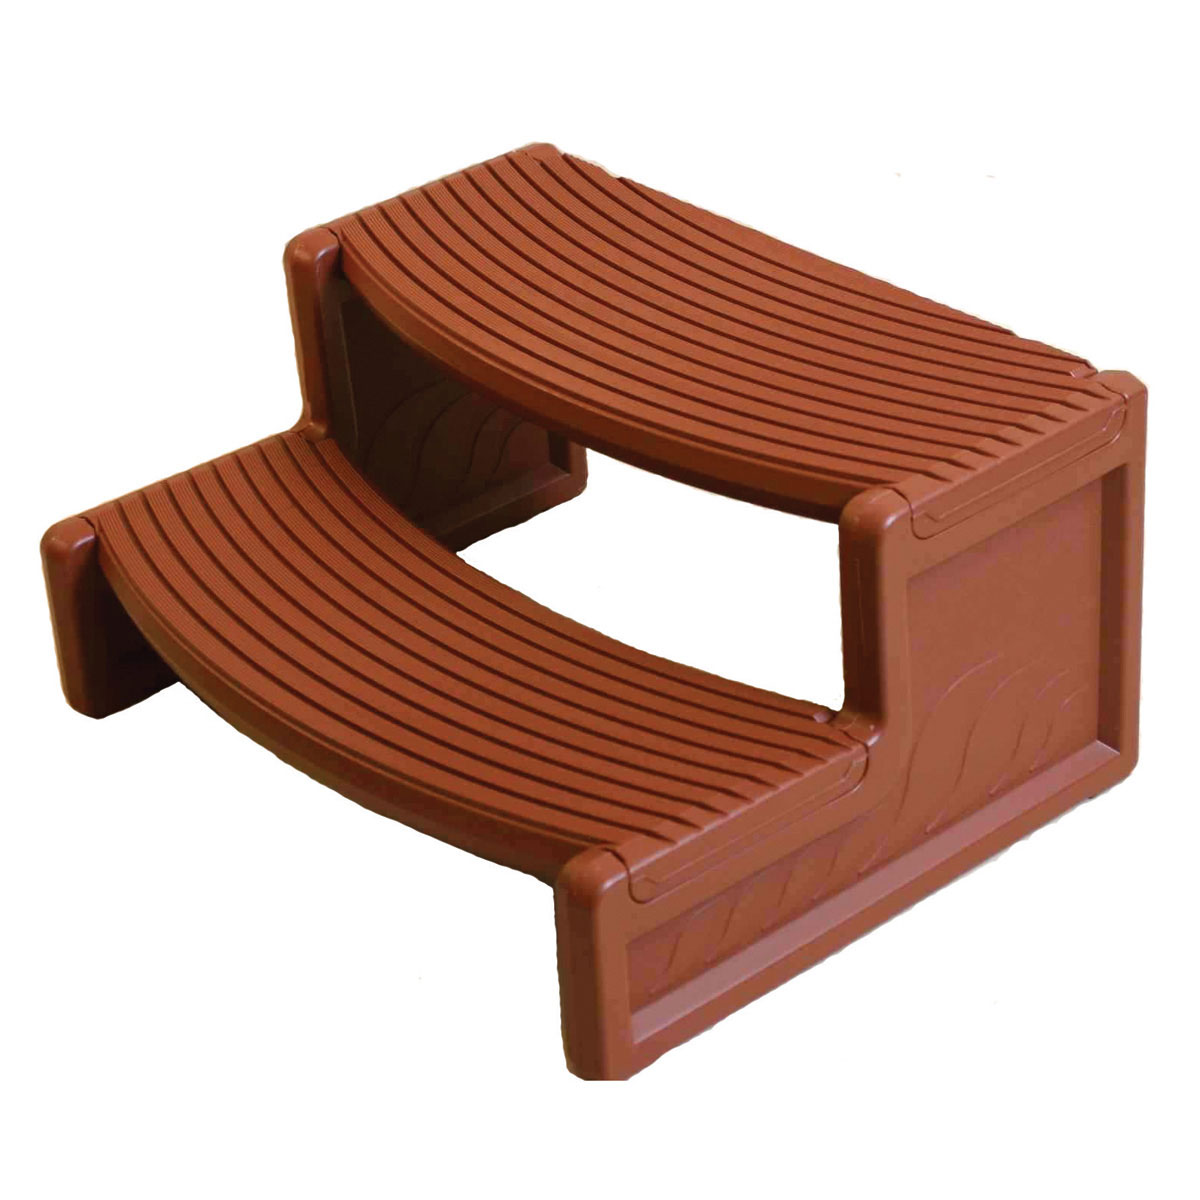 Confer Handi-Step Spa Step - Fits Straight Or Round Spa - Redwood